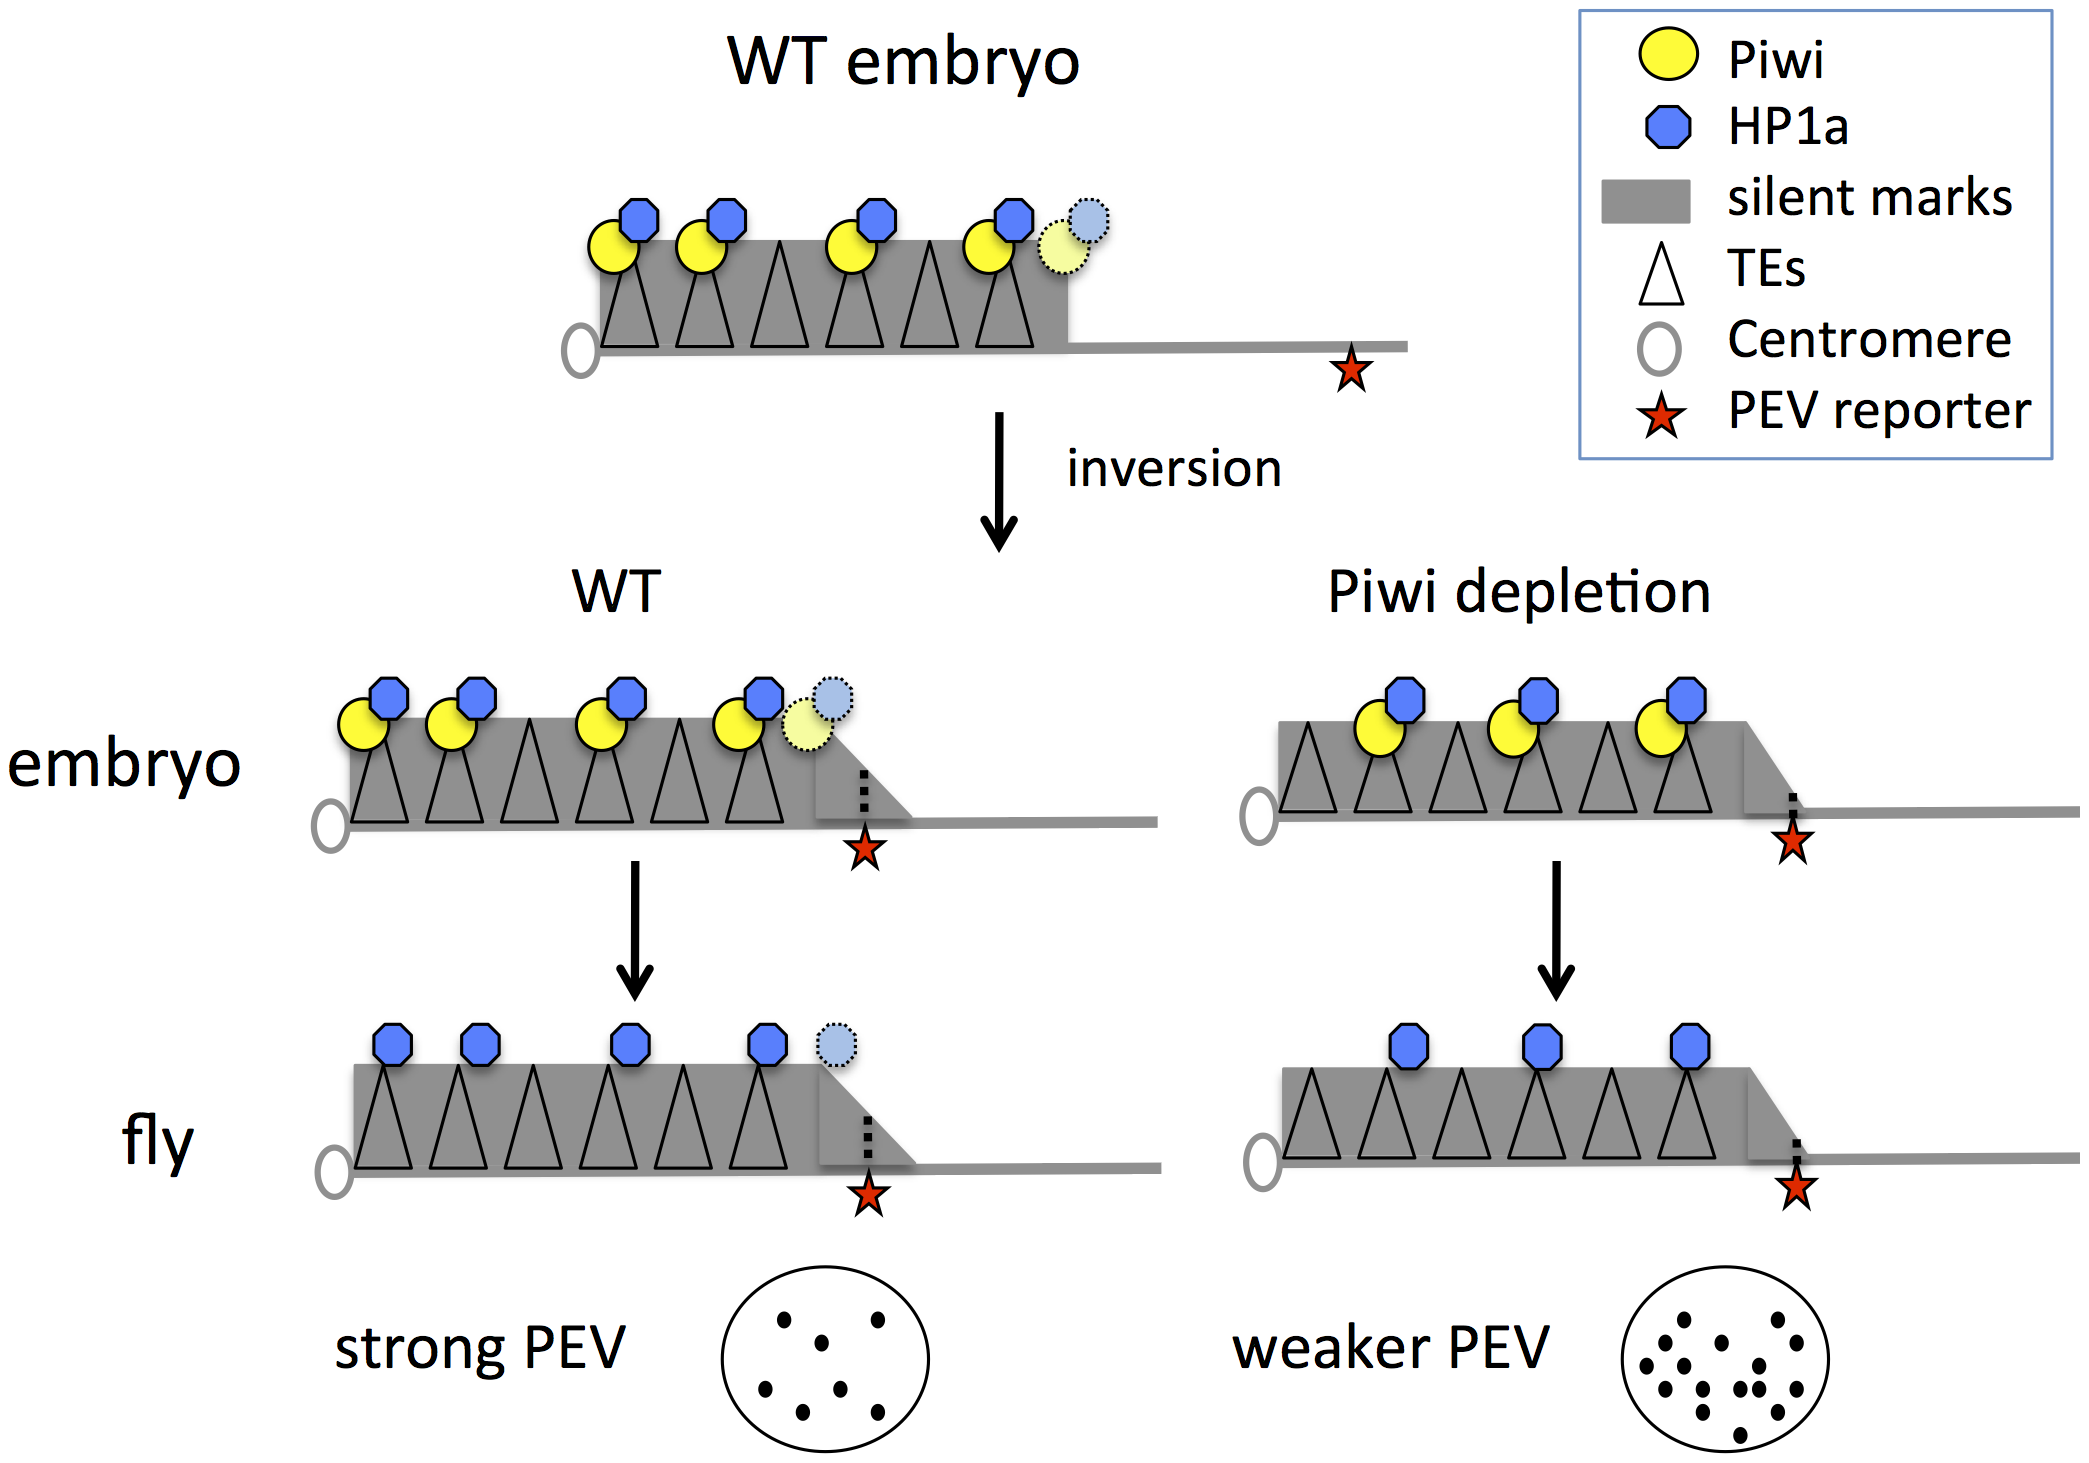 Model for Piwi's role in the heterochromatin formation and PEV reporter silencing.